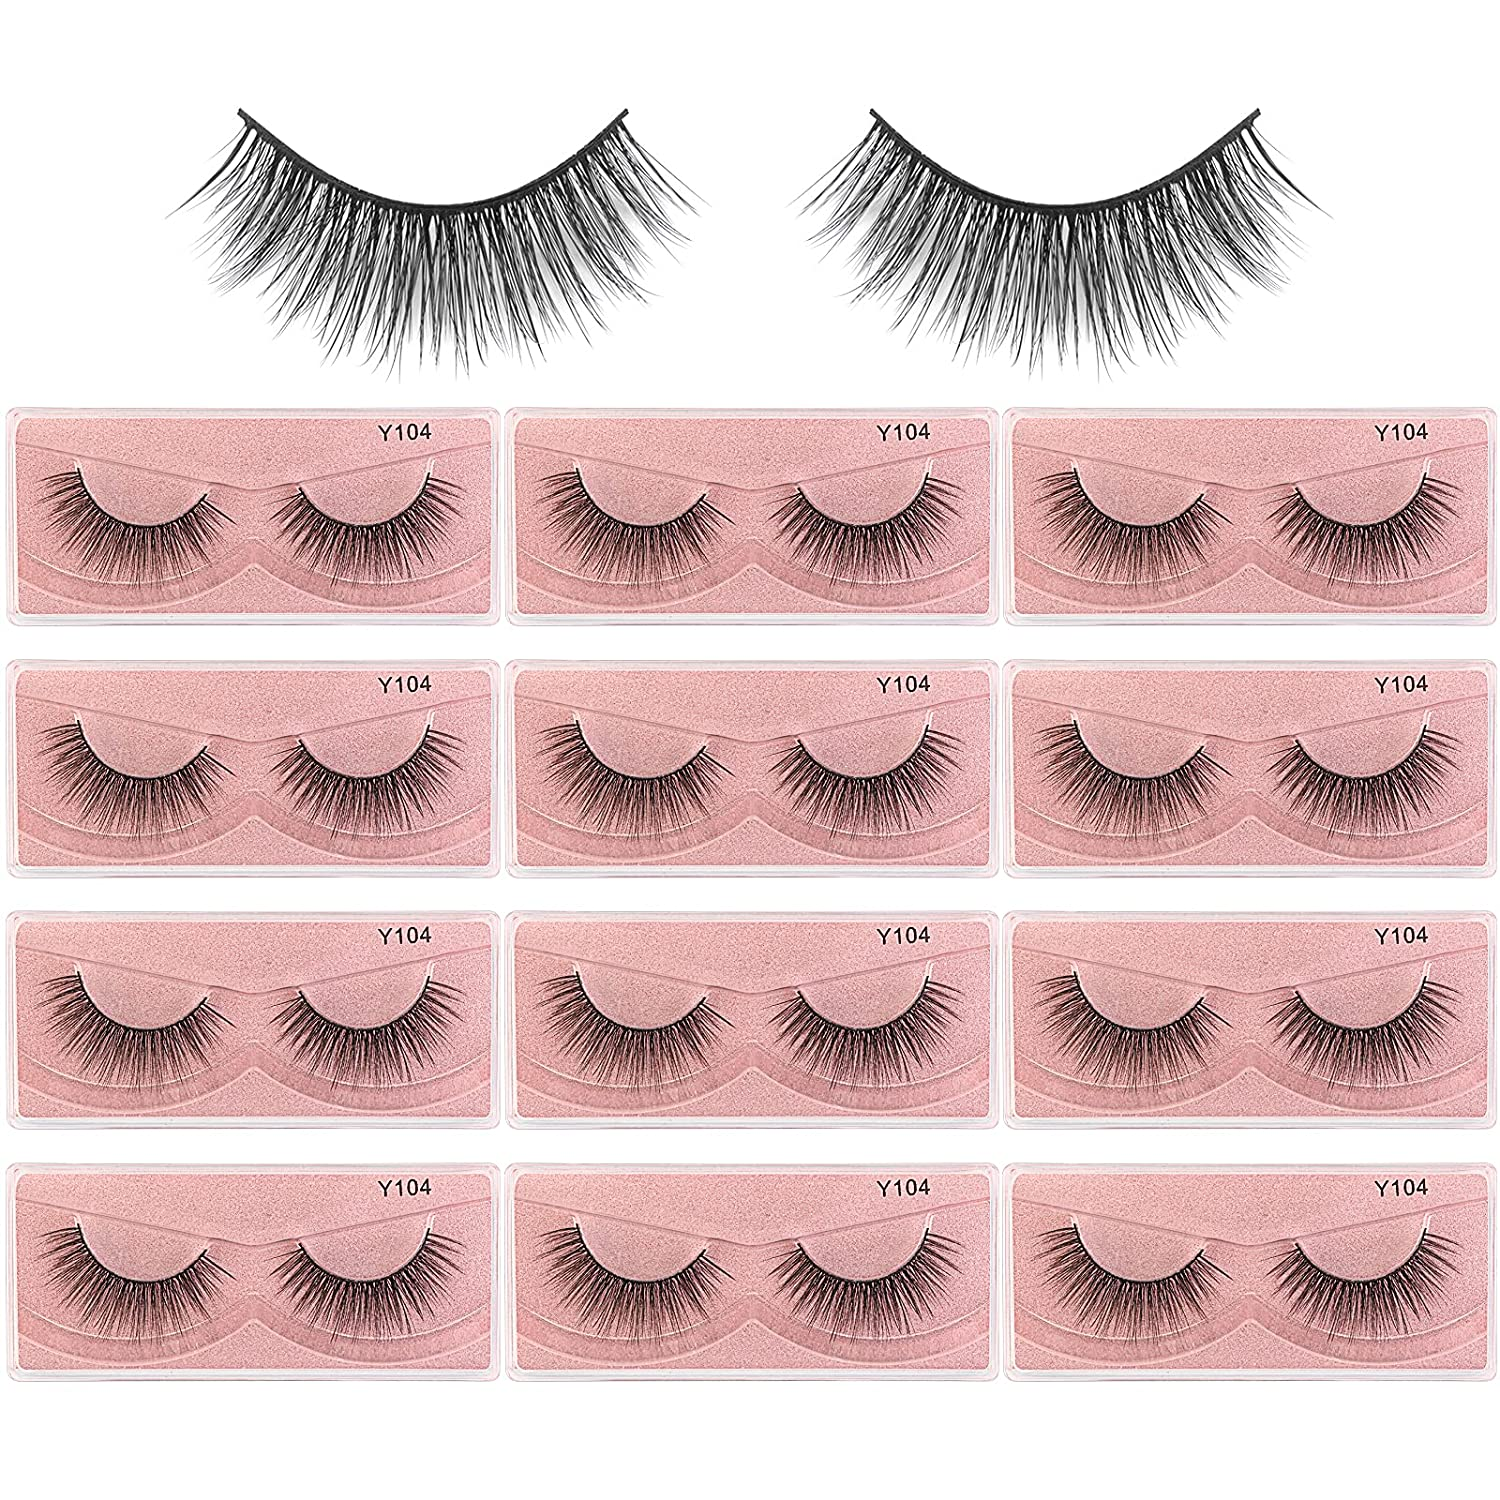 MAGEFY Eyelashes 12 Pairs 1 Style Faux Lashe Natural Ranking discount TOP8 Fluffy Mink